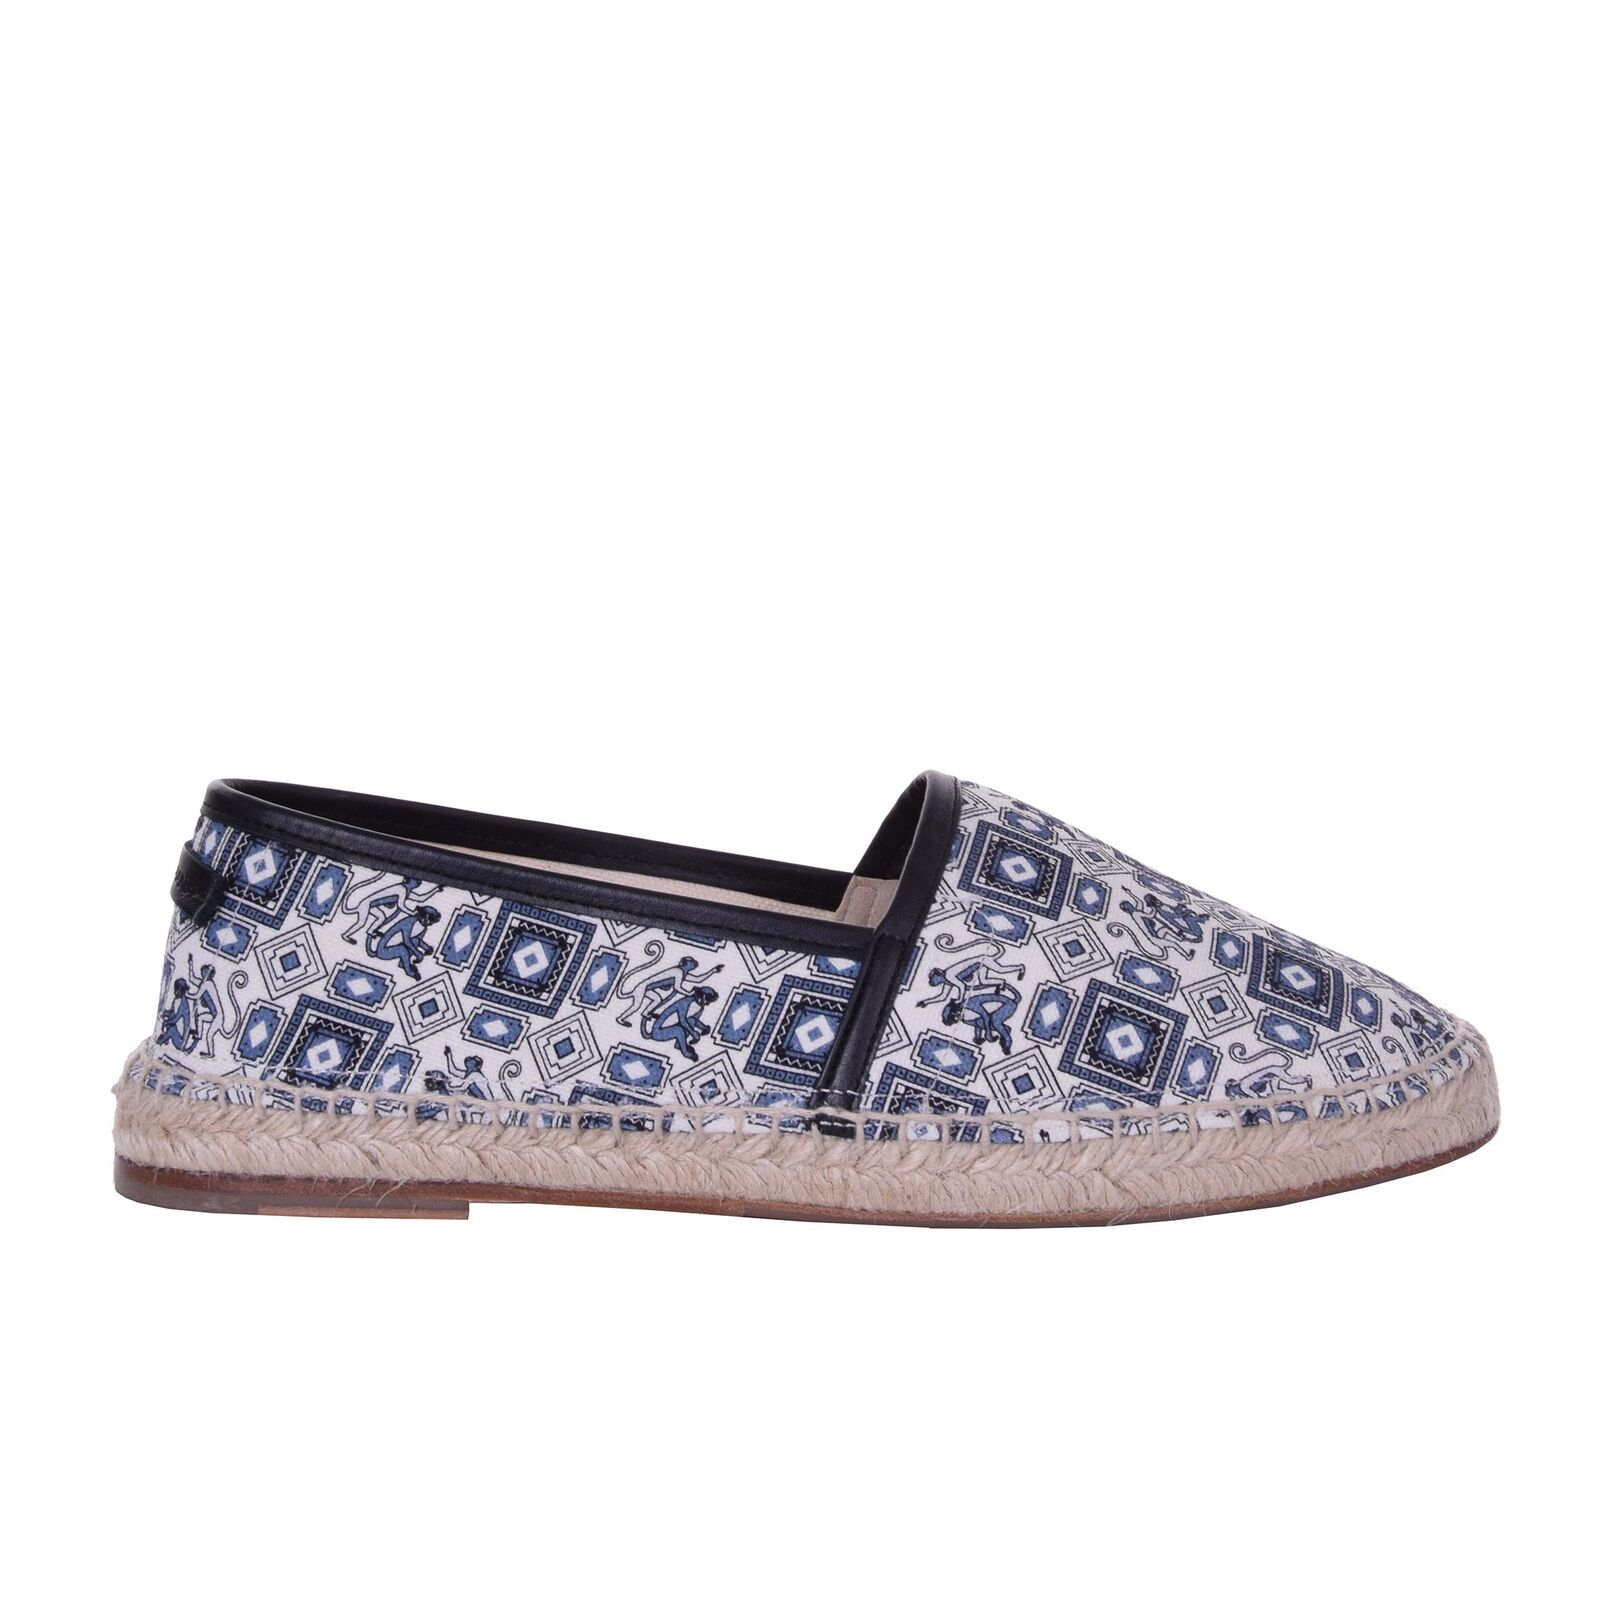 Scarpe casual da uomo  DOLCE & GABBANA Monkeys Printed Canvas Espadrilles Shoes TREMITI Blue 06217